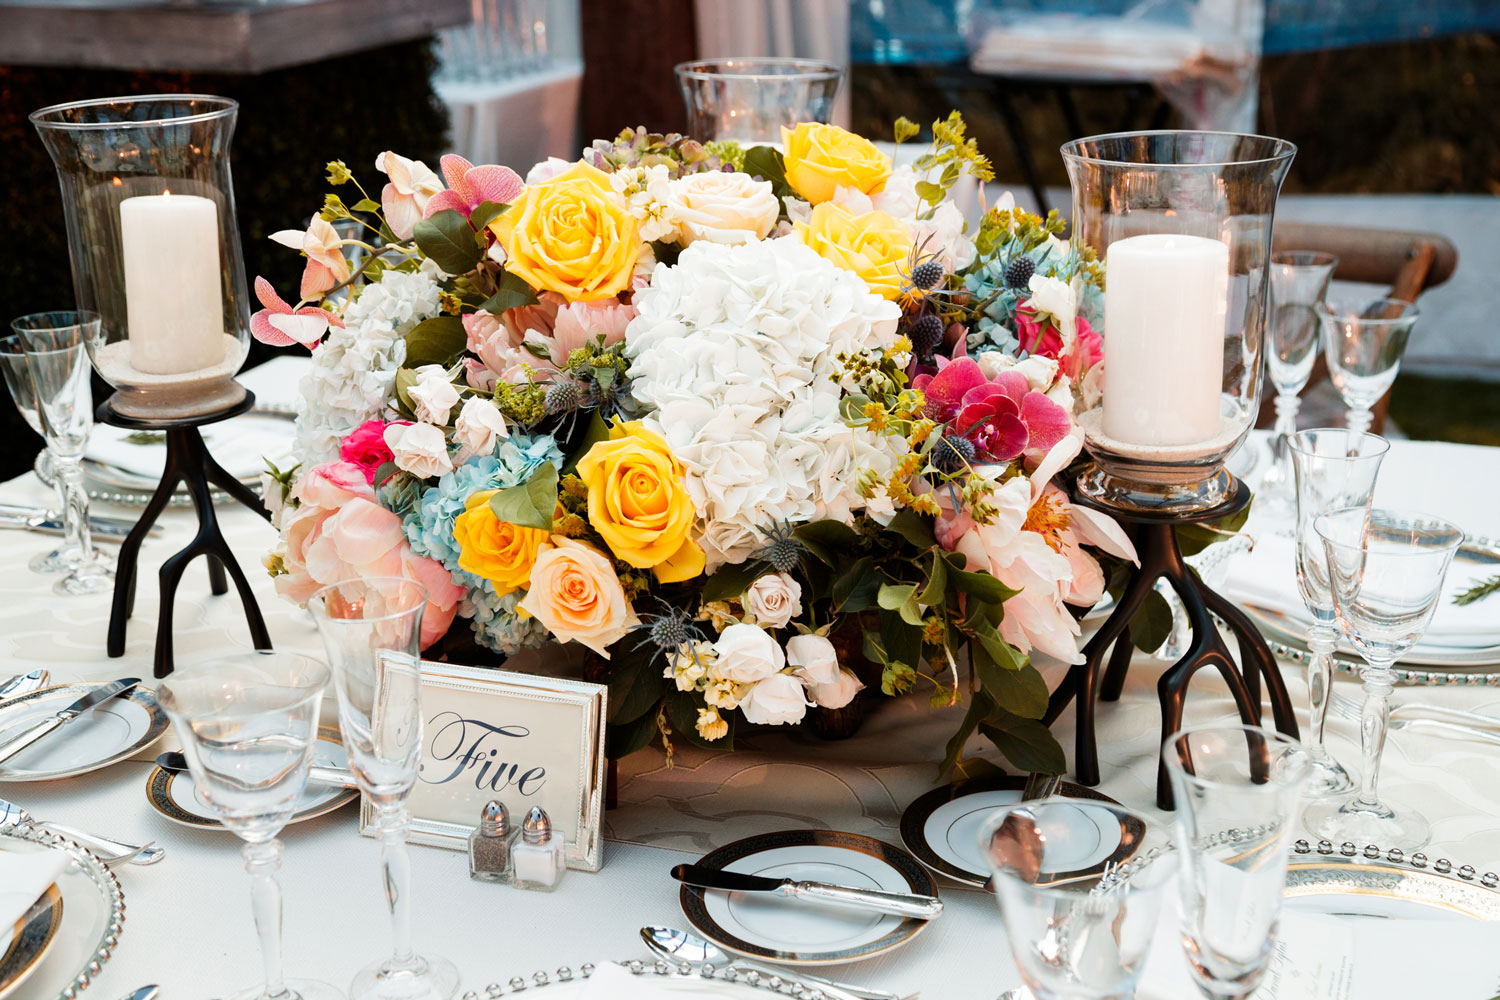 Inside Weddings Summer 2017 Issue Preview centerpiece at outdoor wedding reception colorful wedding ideas